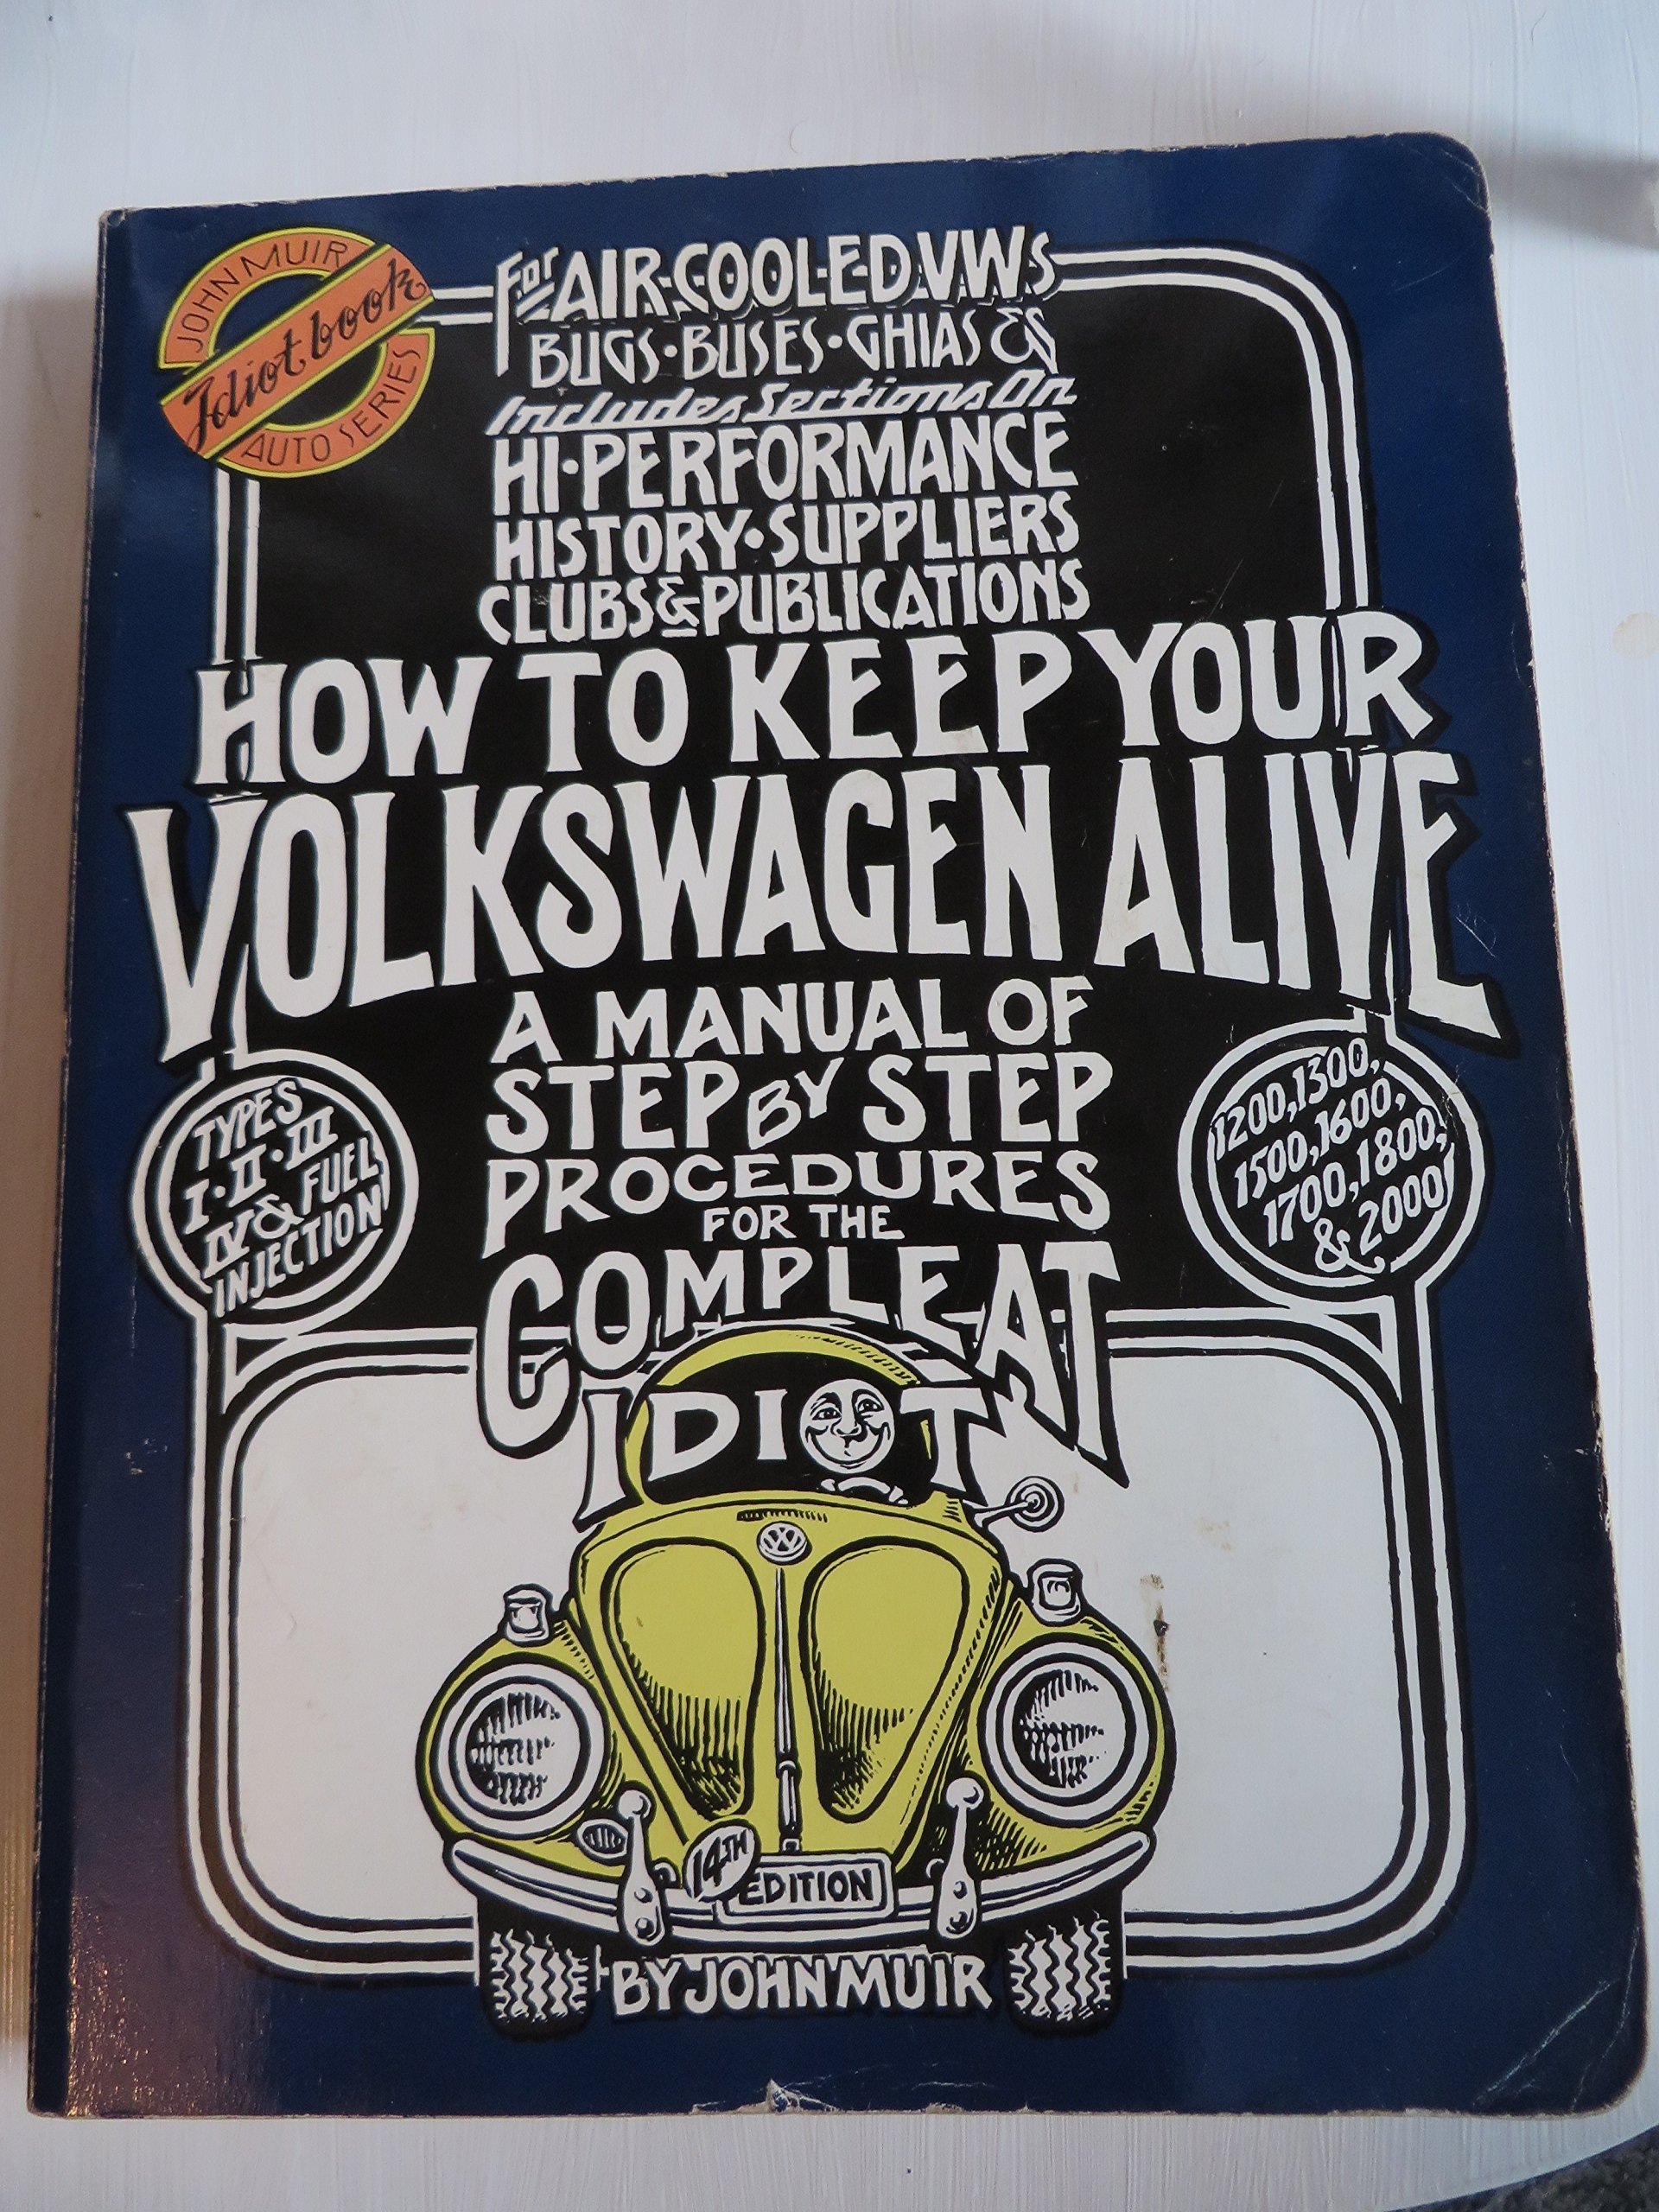 Amazon repair maintenance books engines transmissions how to keep your volkswagen alive a manual of step by step procedures for the fandeluxe Images